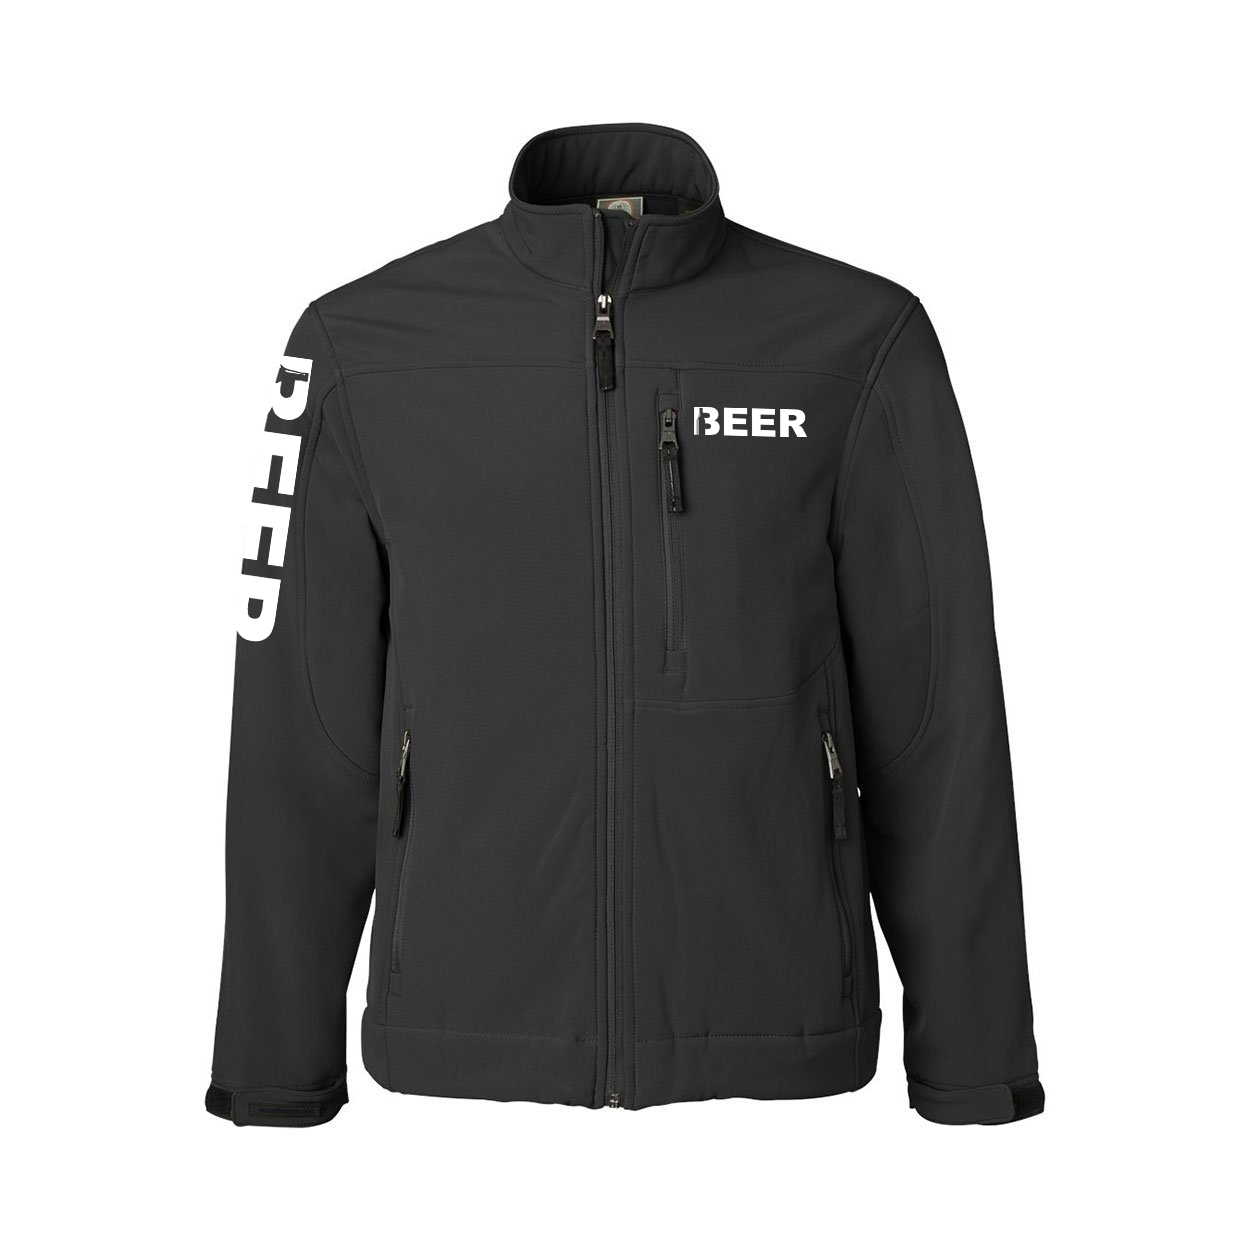 Beer Bottle Logo Classic Soft Shell Weatherproof Jacket (White Logo)